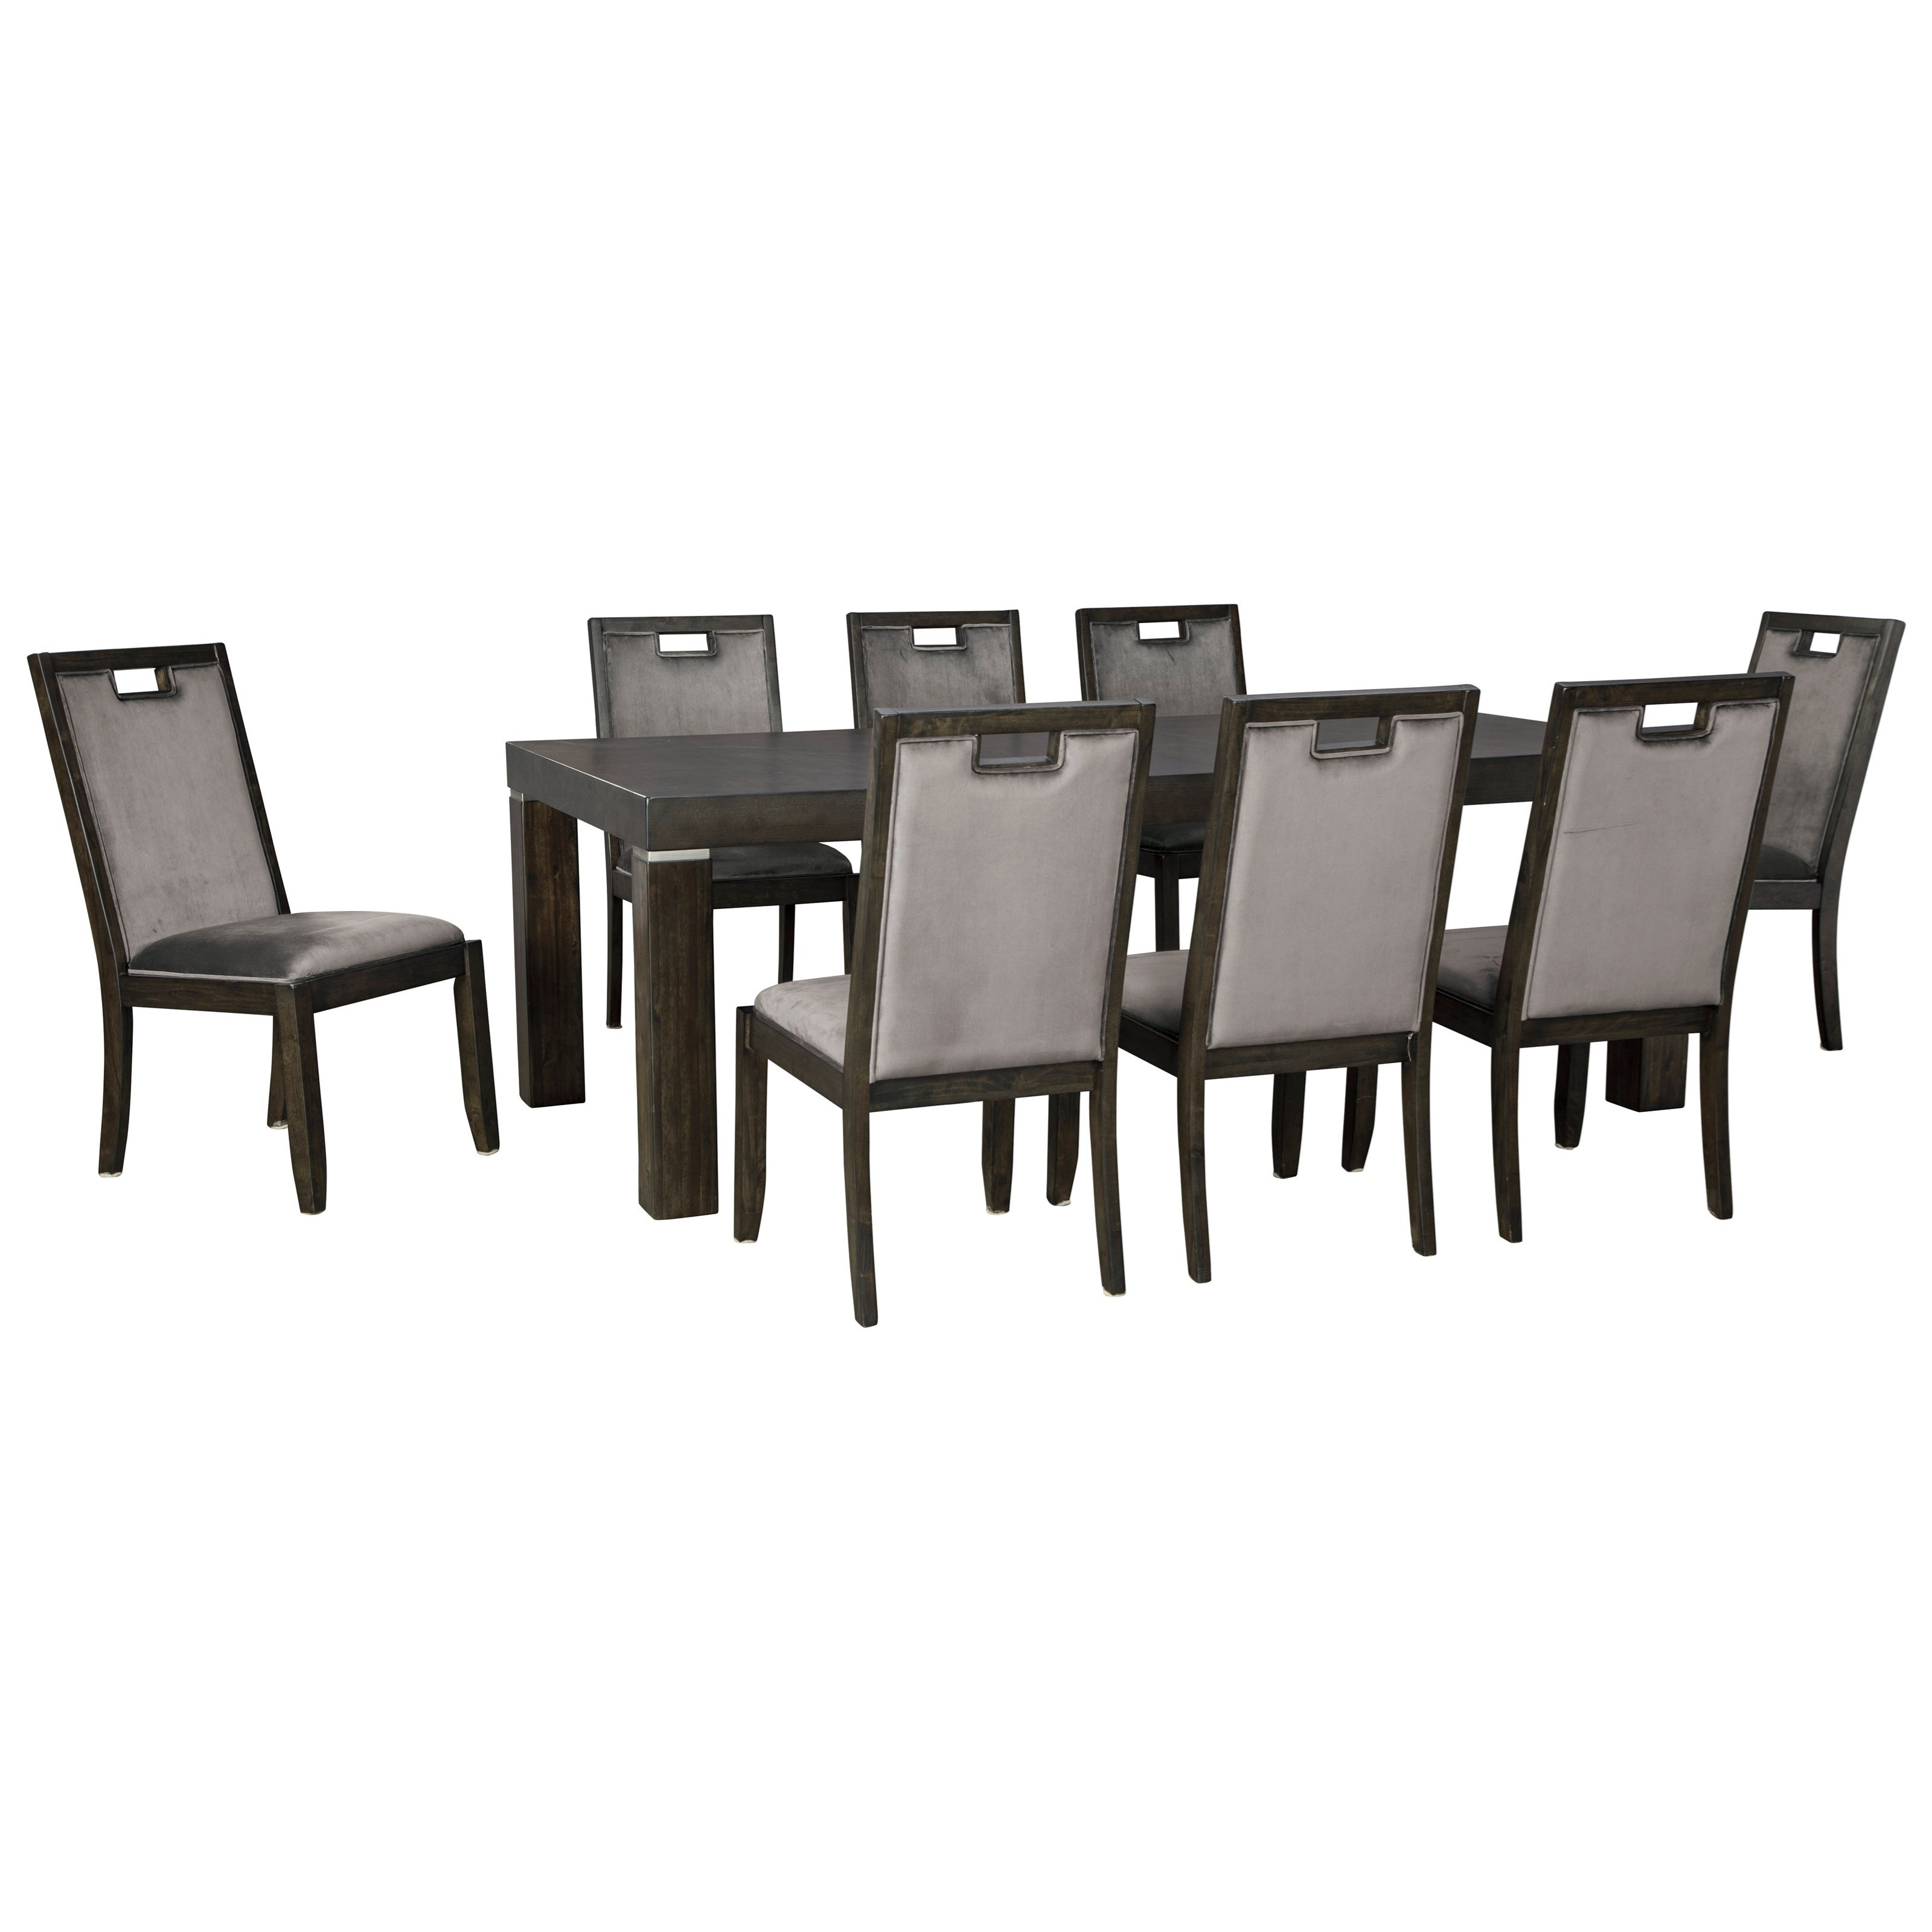 Hyndell 9-Piece Rectangular Dining Table Set by Signature Design by Ashley at Rife's Home Furniture